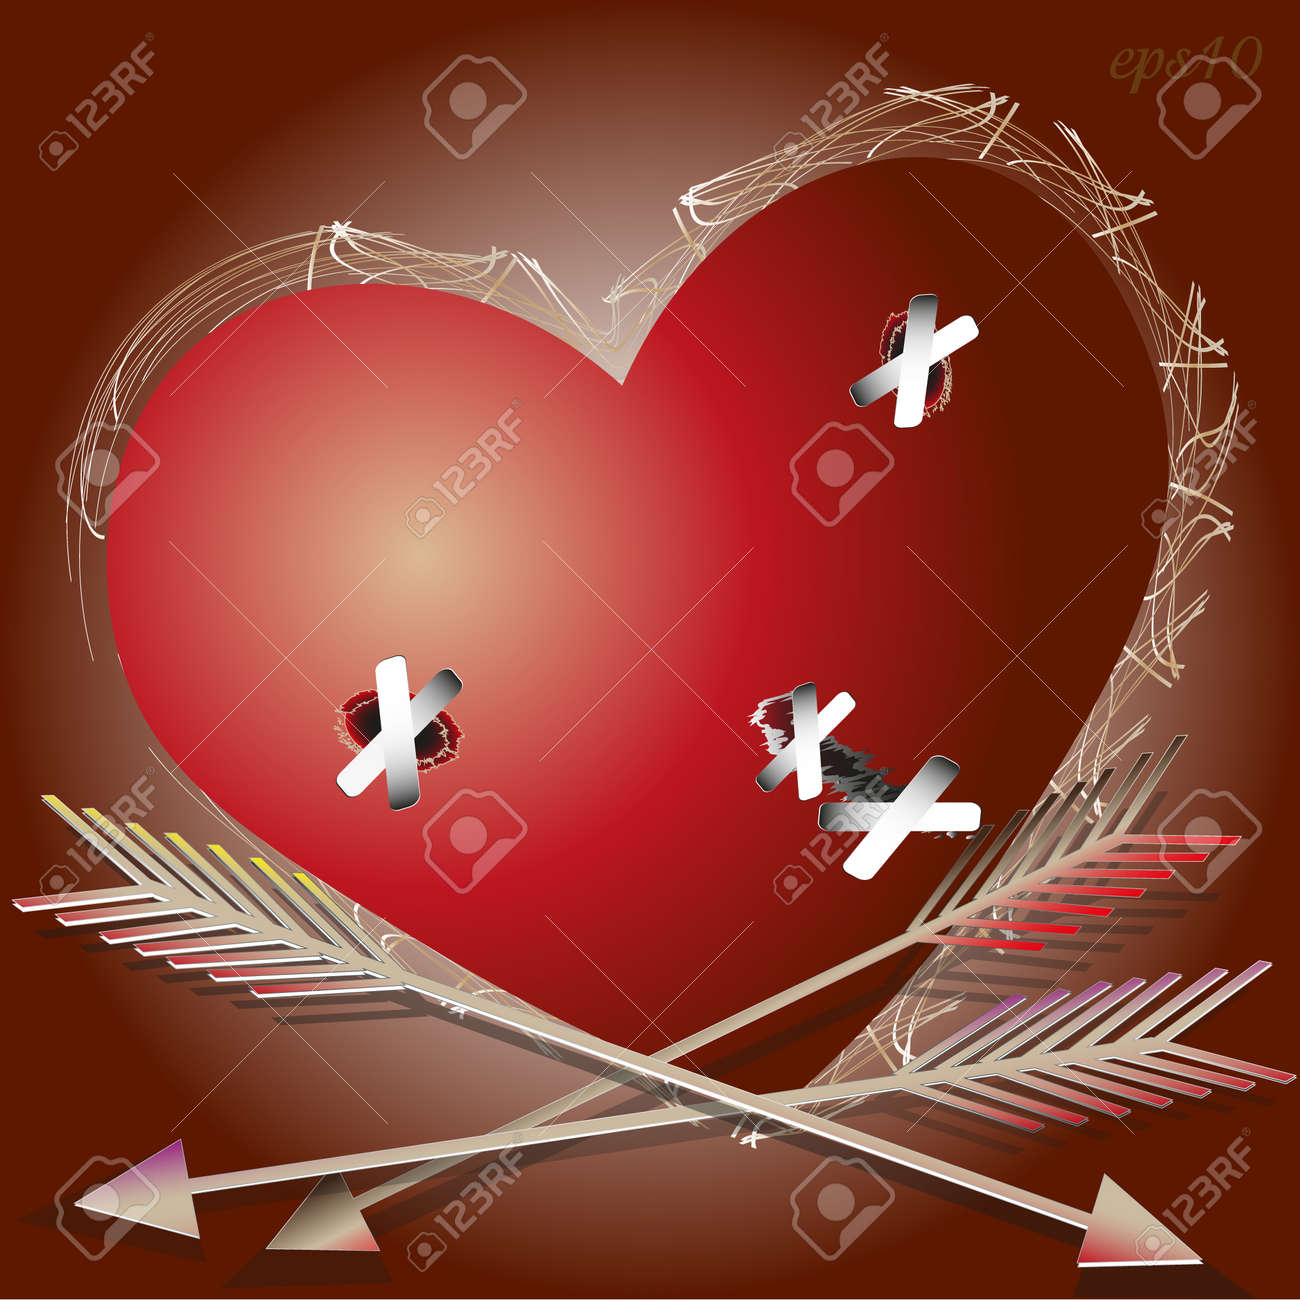 The wounded heart abstract valentine greeting card writer design the wounded heart abstract valentine greeting card writer design cupid arrow wound to seal the plaster m4hsunfo